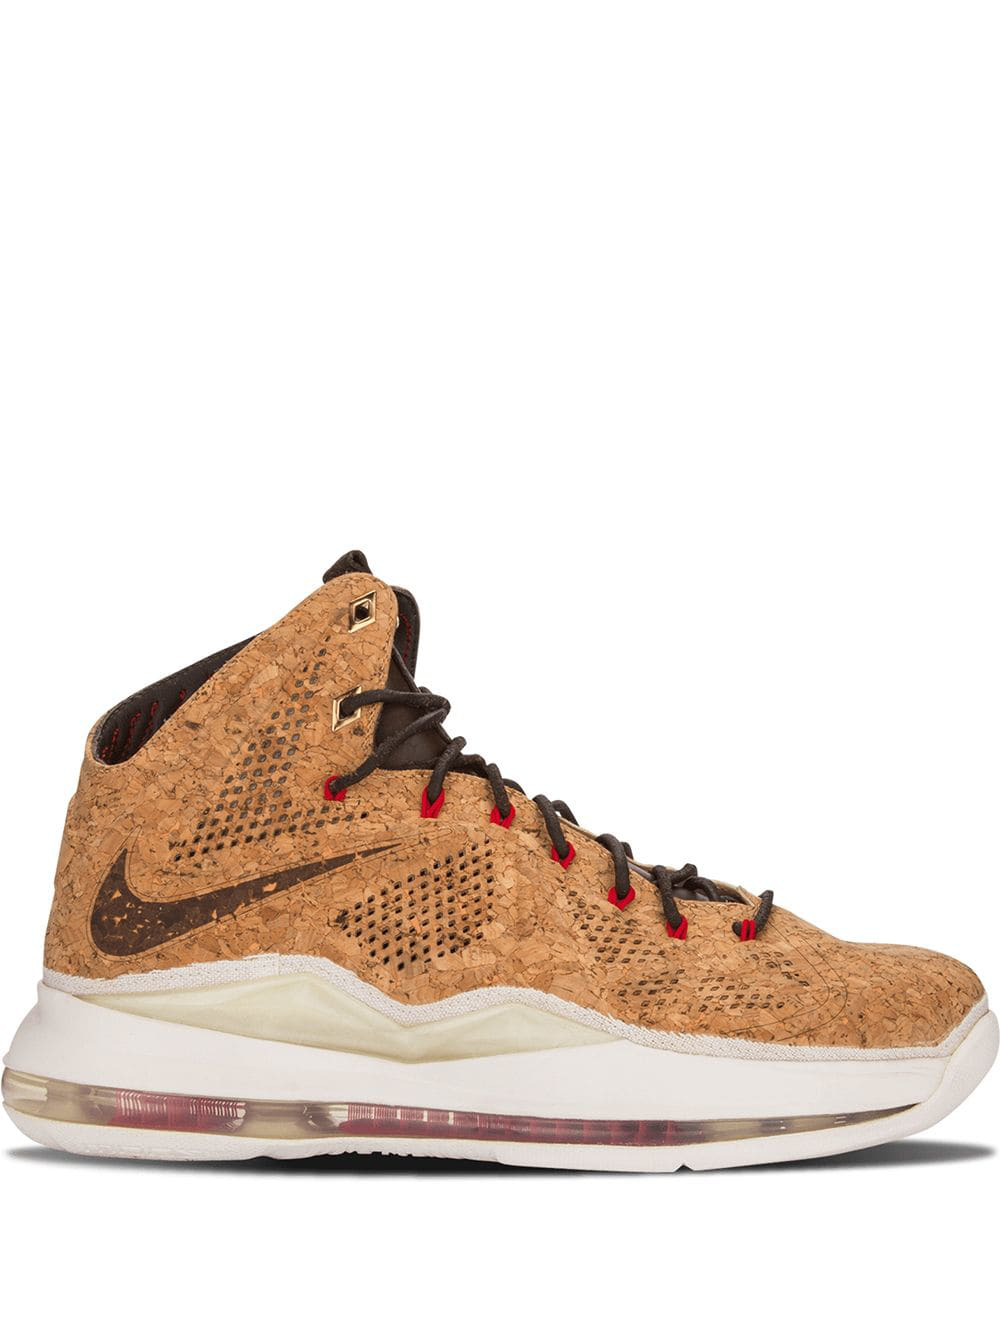 size 40 663ac cdc69 Nike Lebron 10 Ext Cork Qs Sneakers - Brown